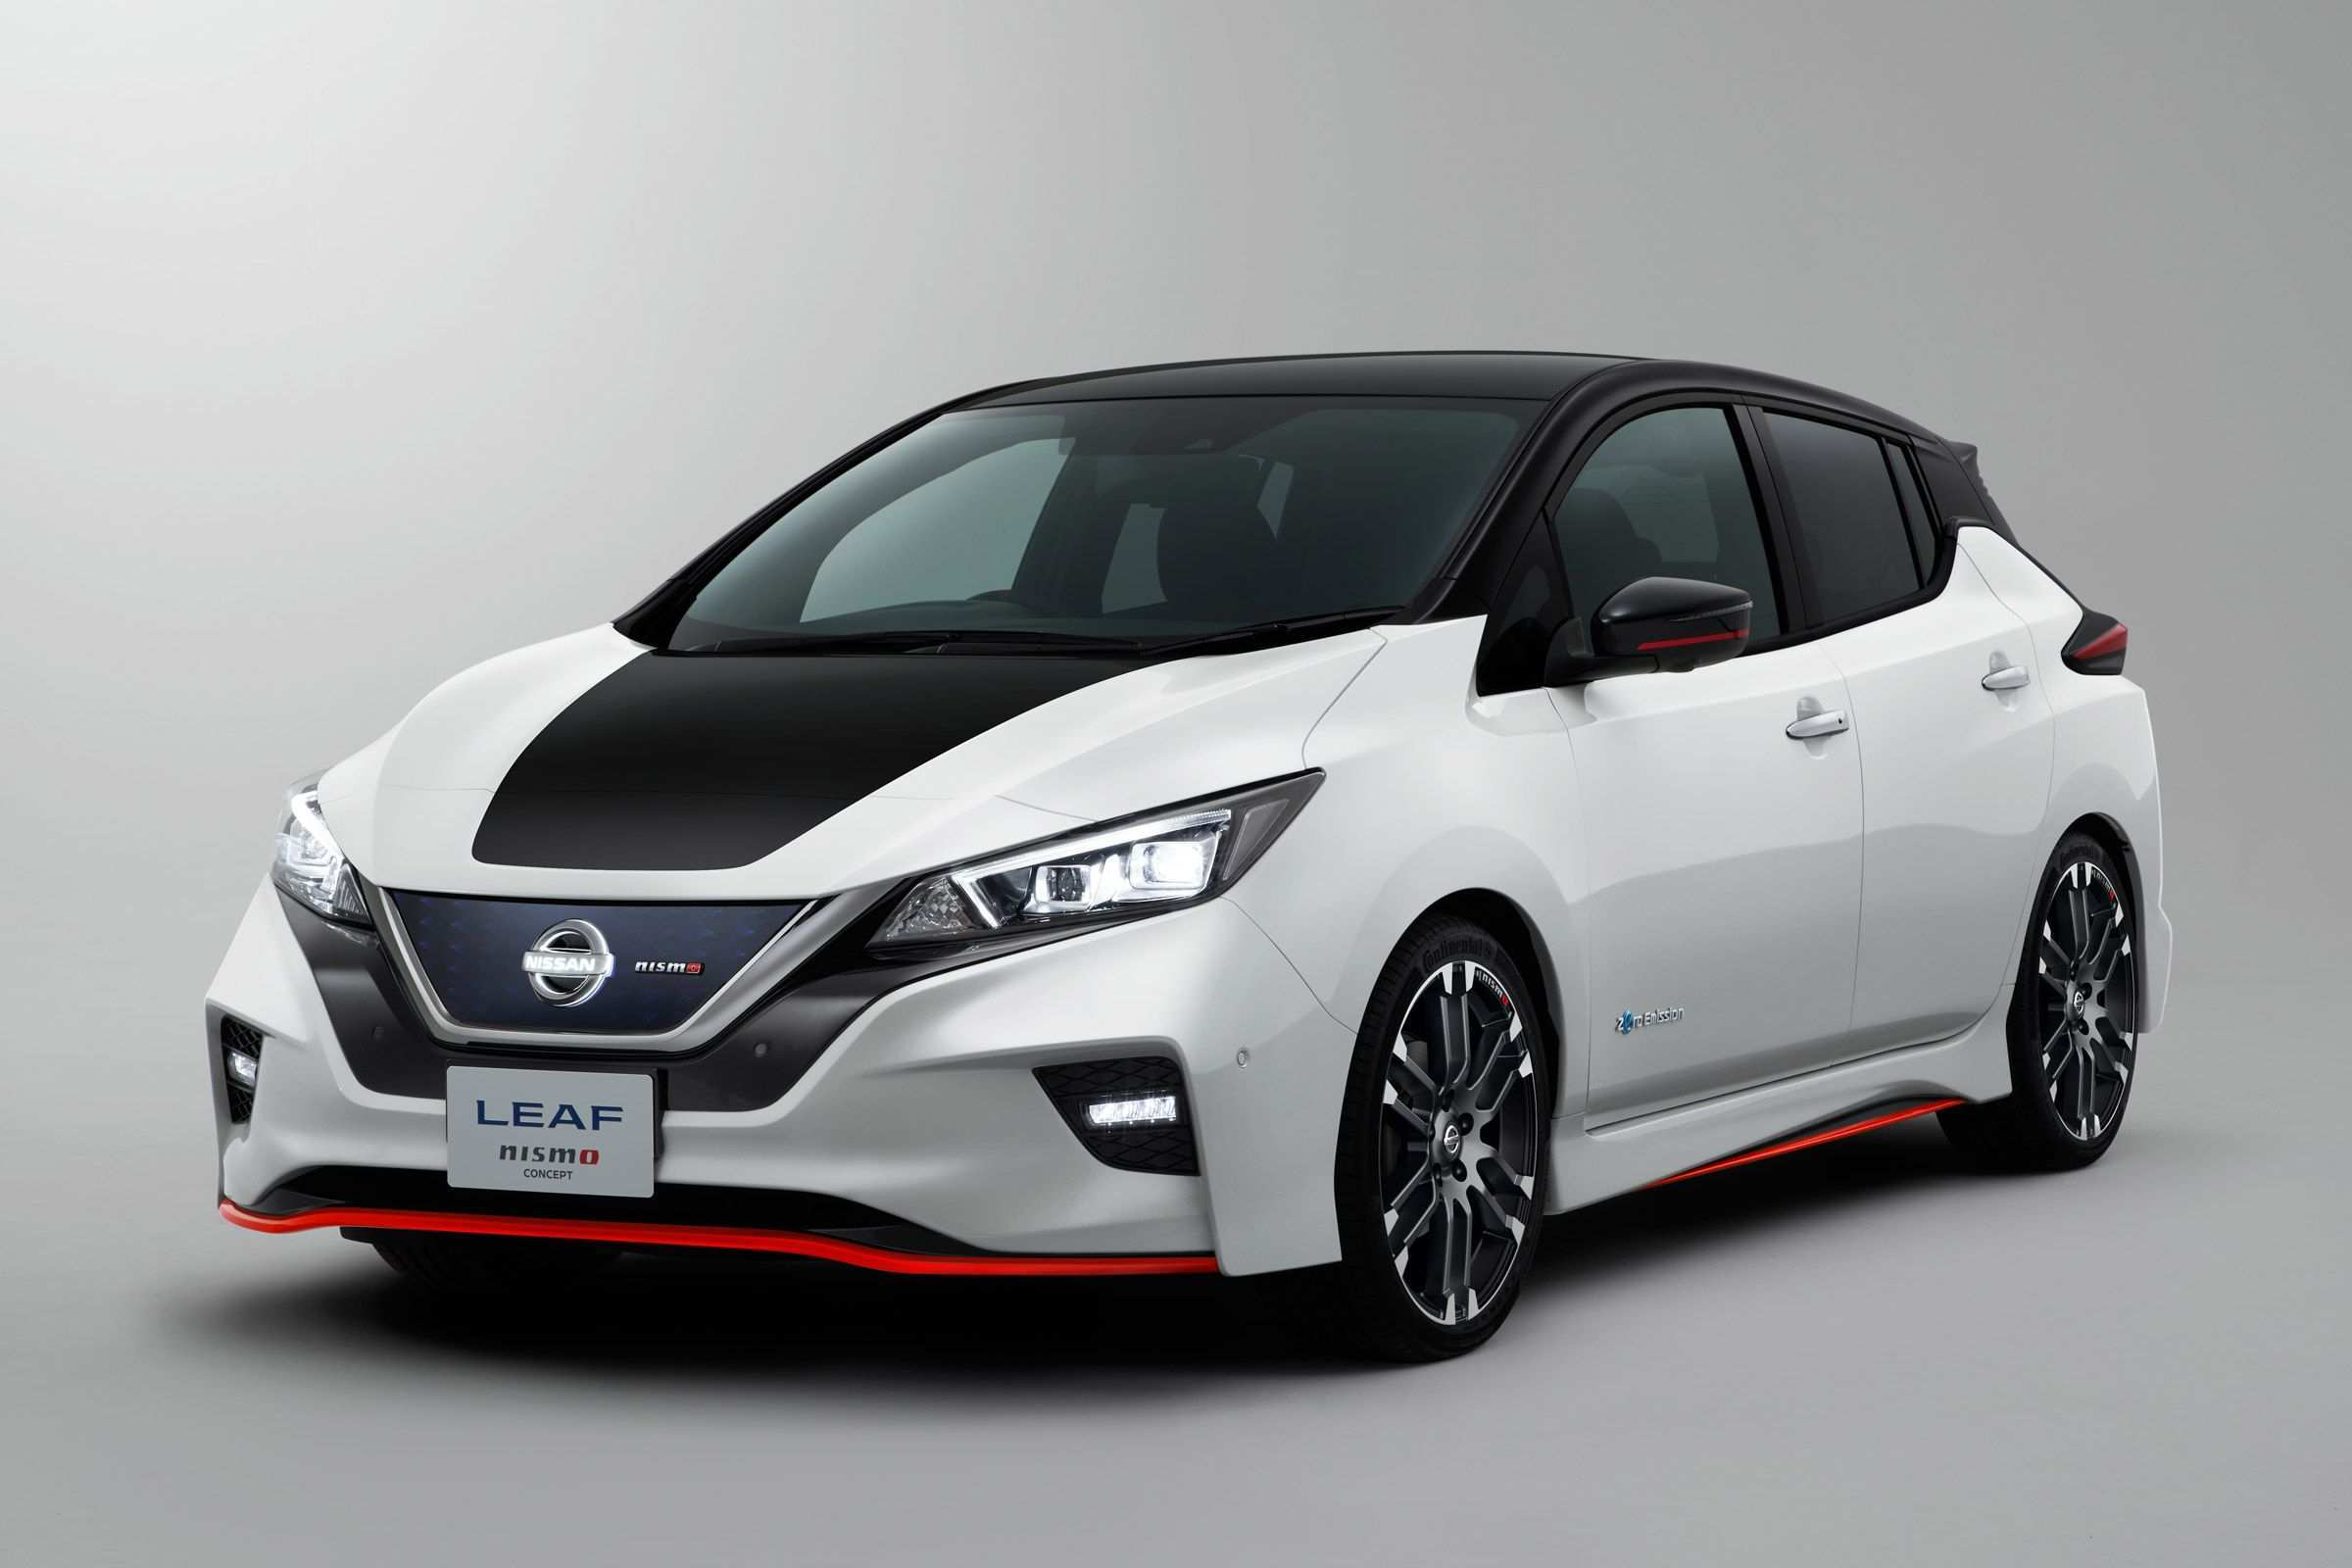 73 New 2020 Nissan Leaf Price Rumors with 2020 Nissan Leaf Price